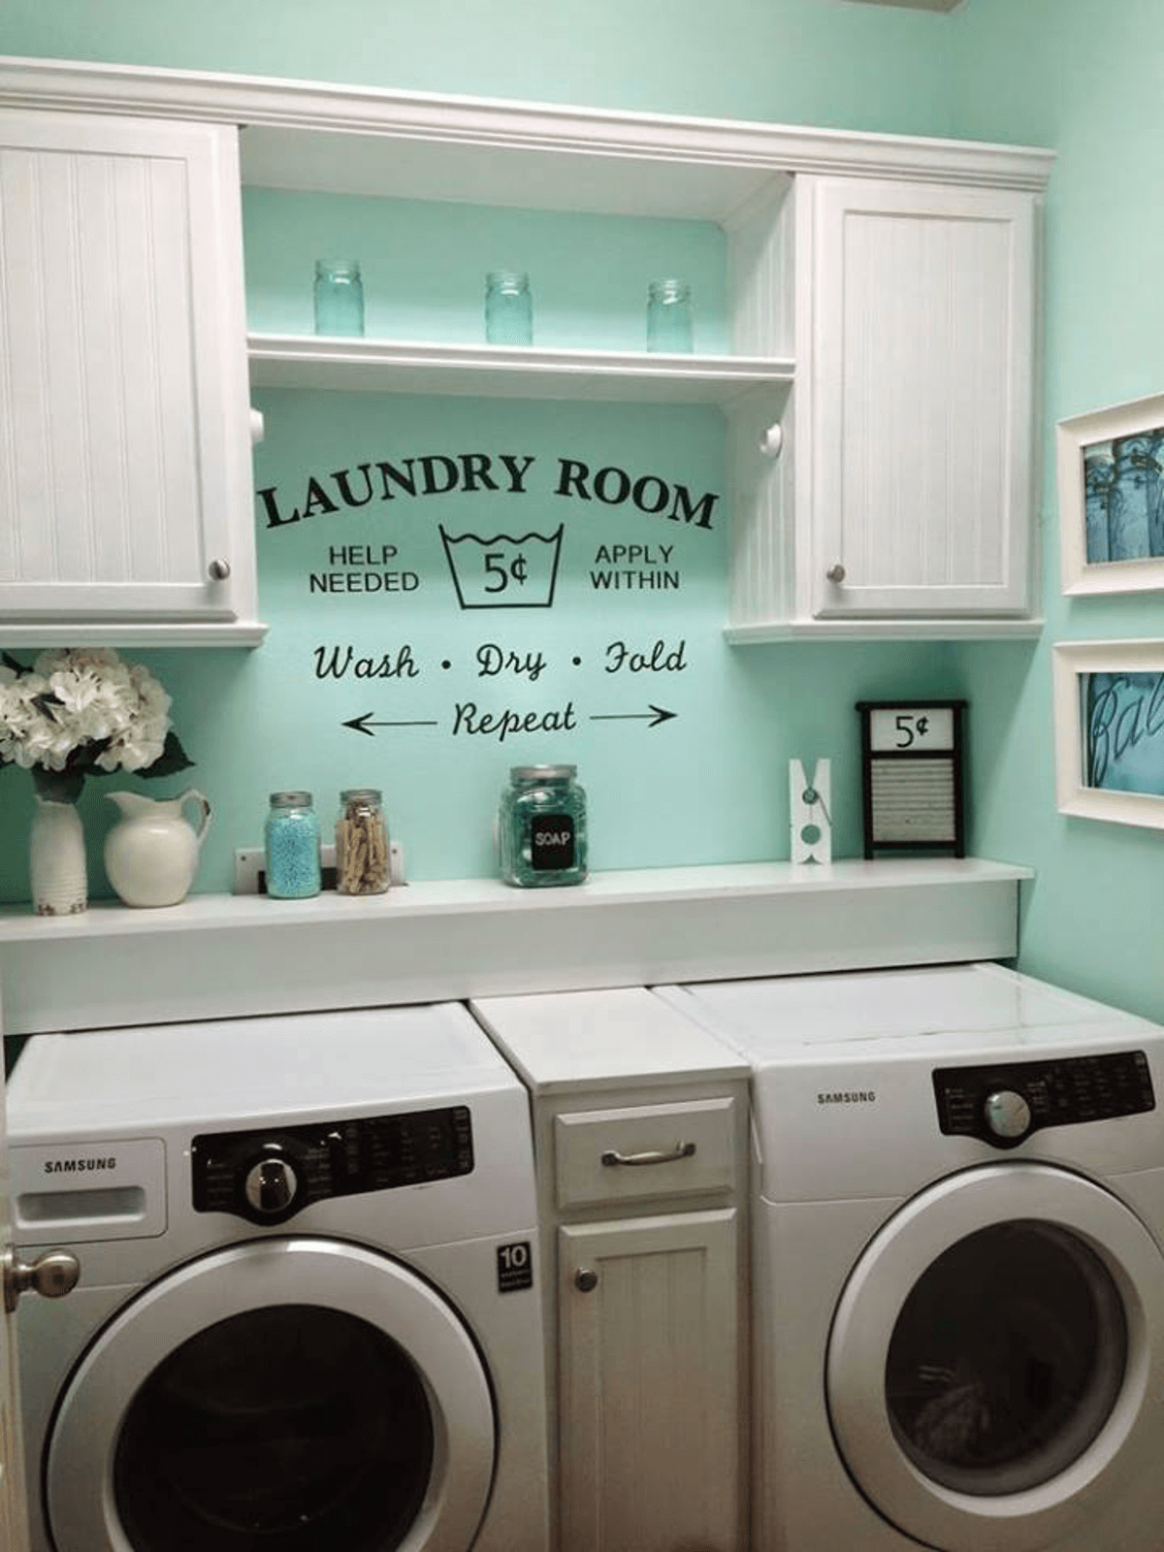 11 Best Small Laundry Room Design Ideas for 11